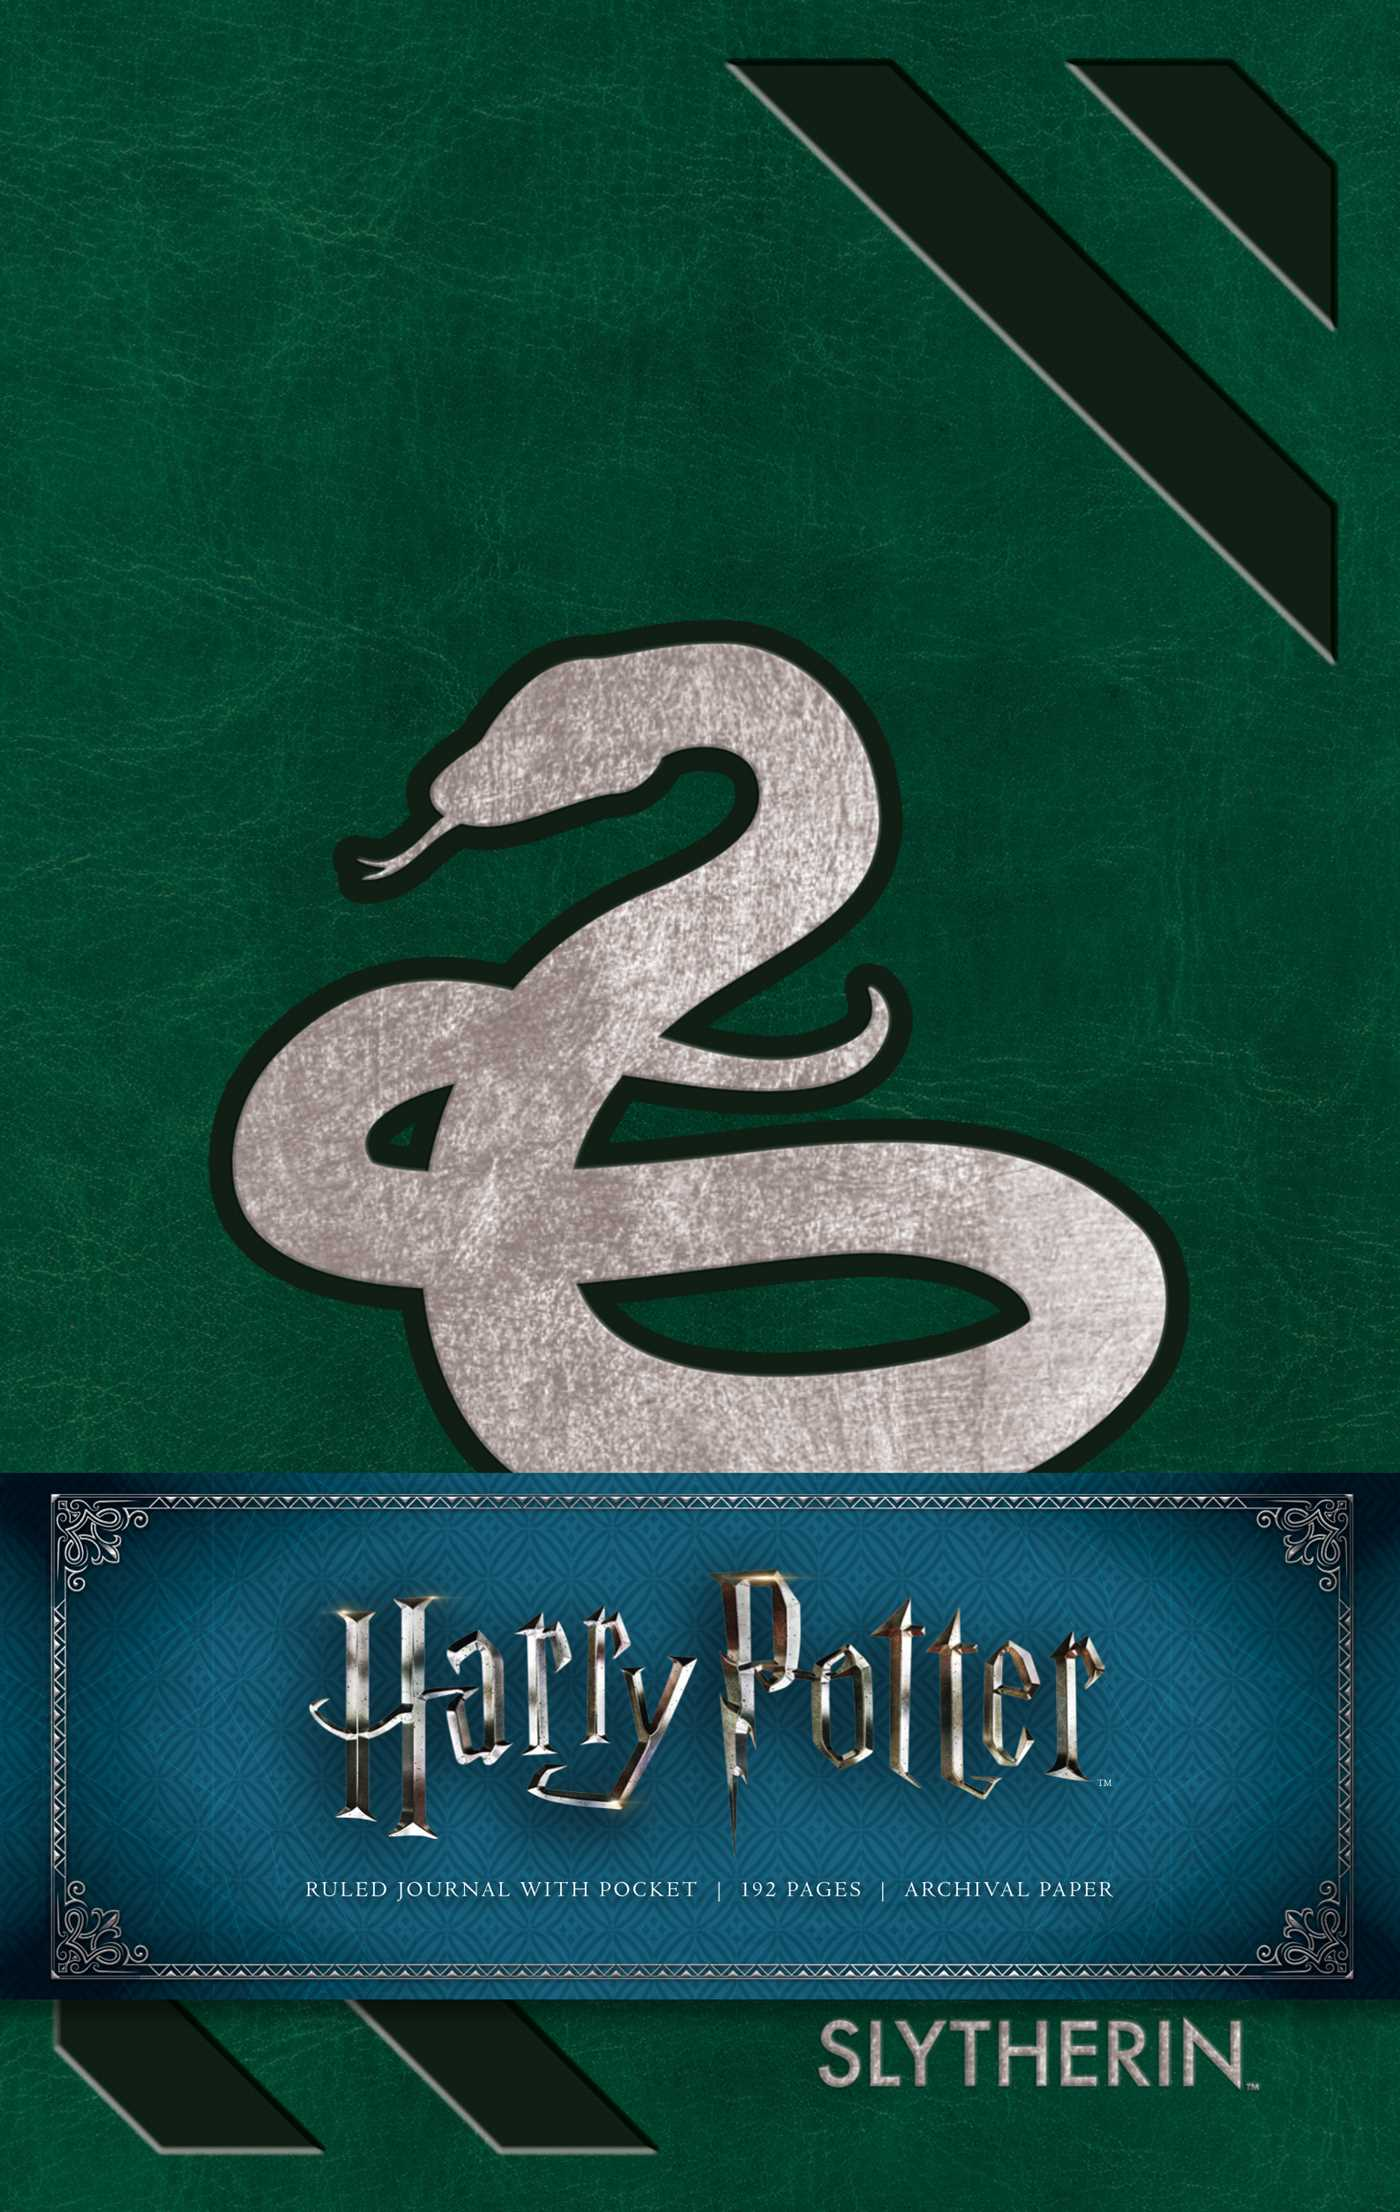 Harry potter slytherin hardcover ruled journal 9781683833185 hr